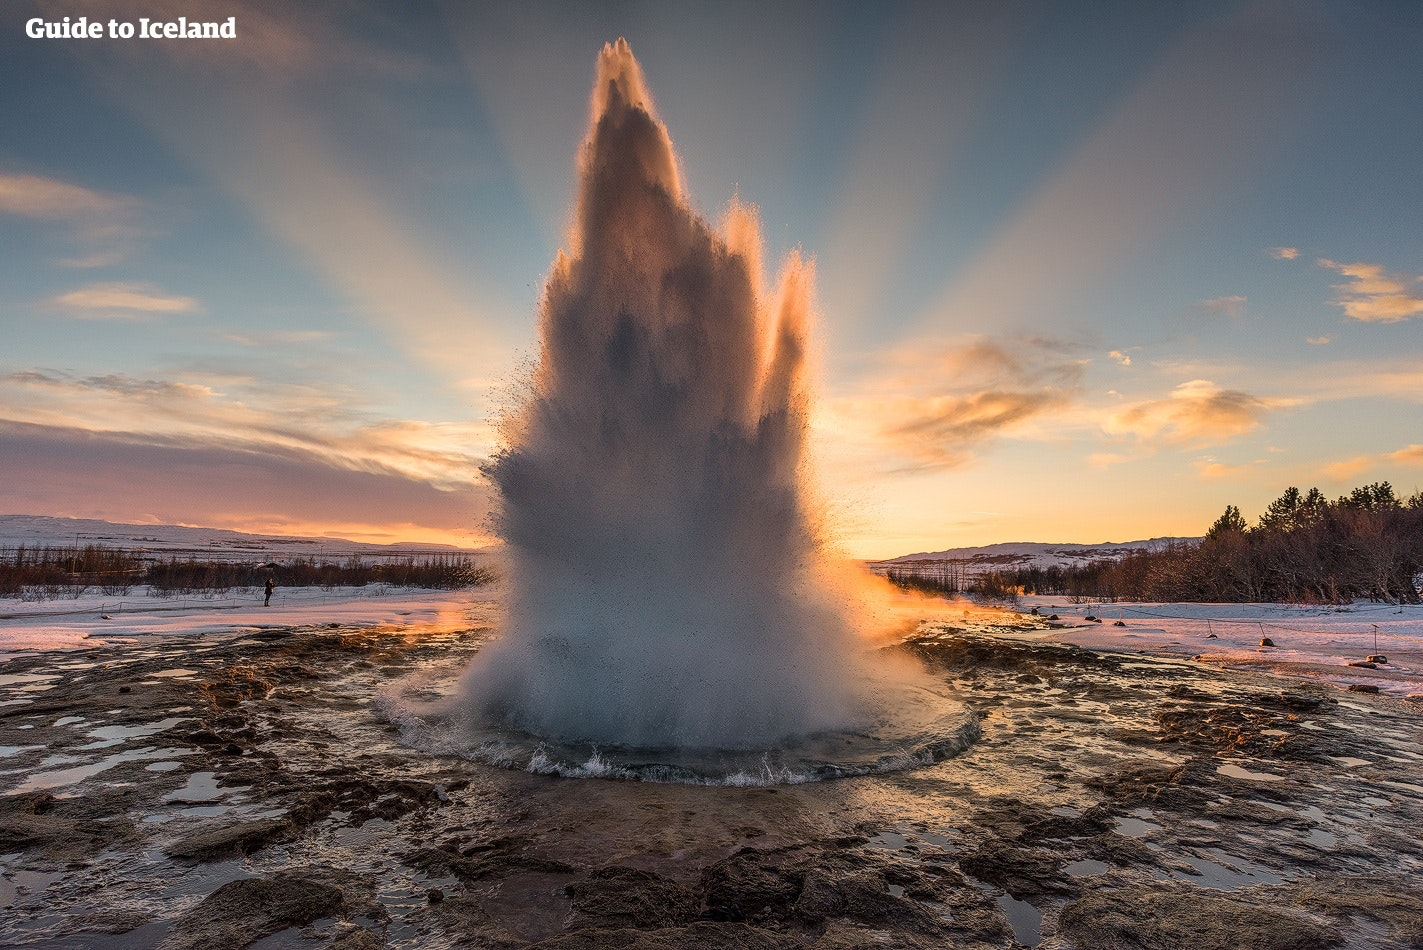 Strokkur geyser erupting during sunrise